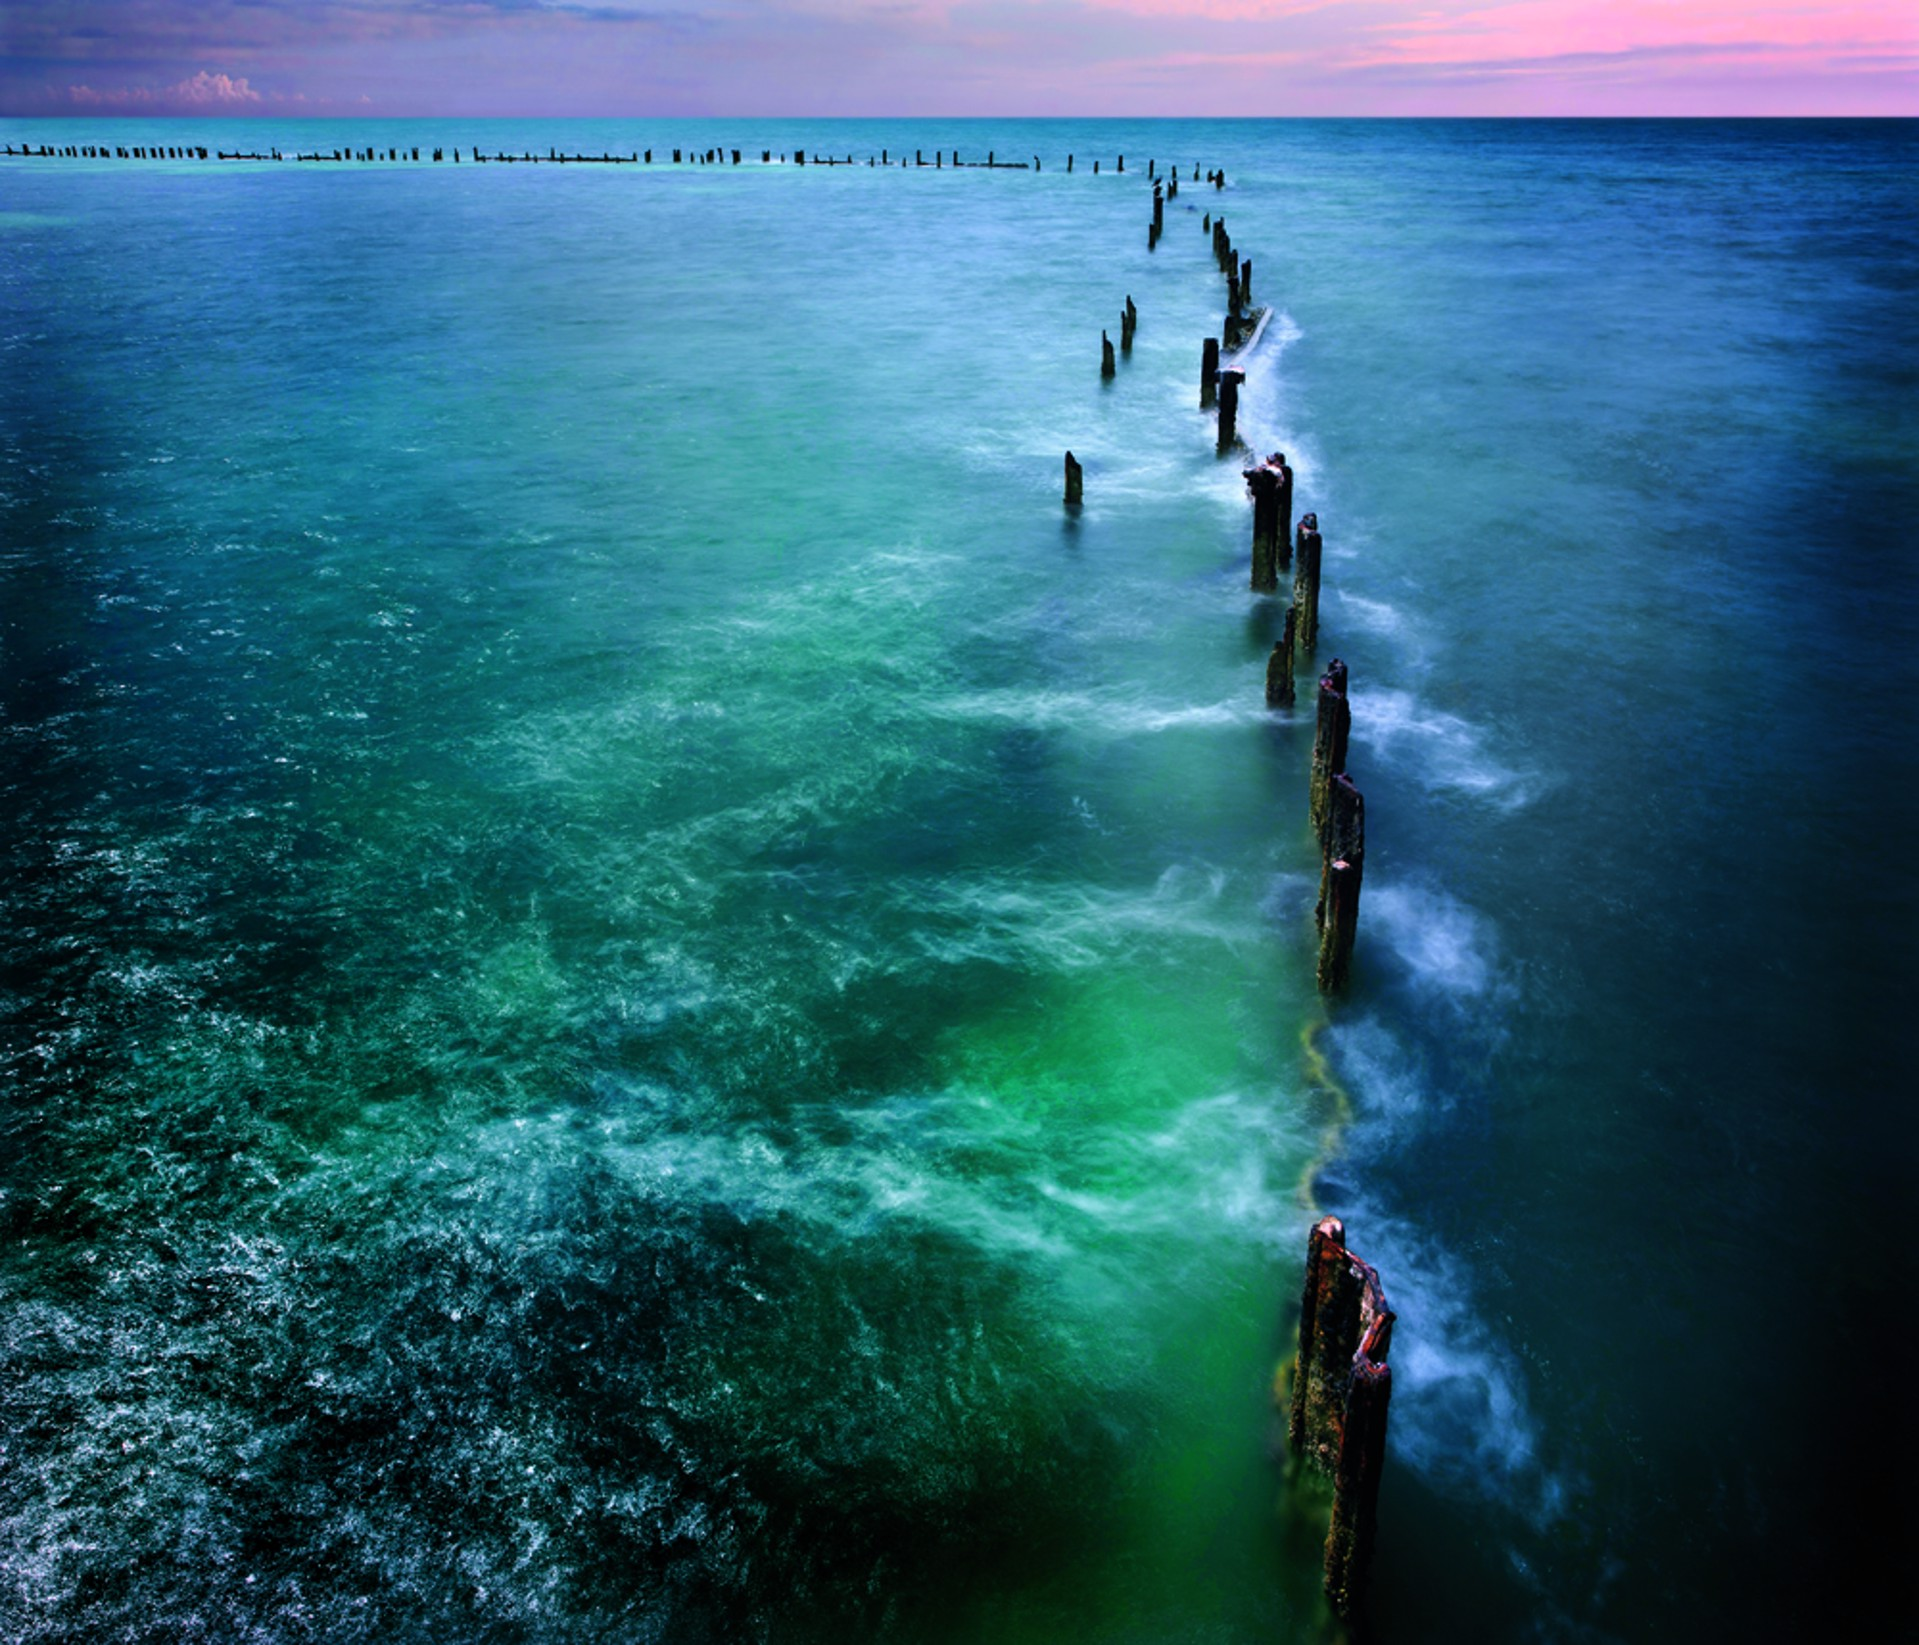 Higgs Pier, Key West, Forida by David Magee